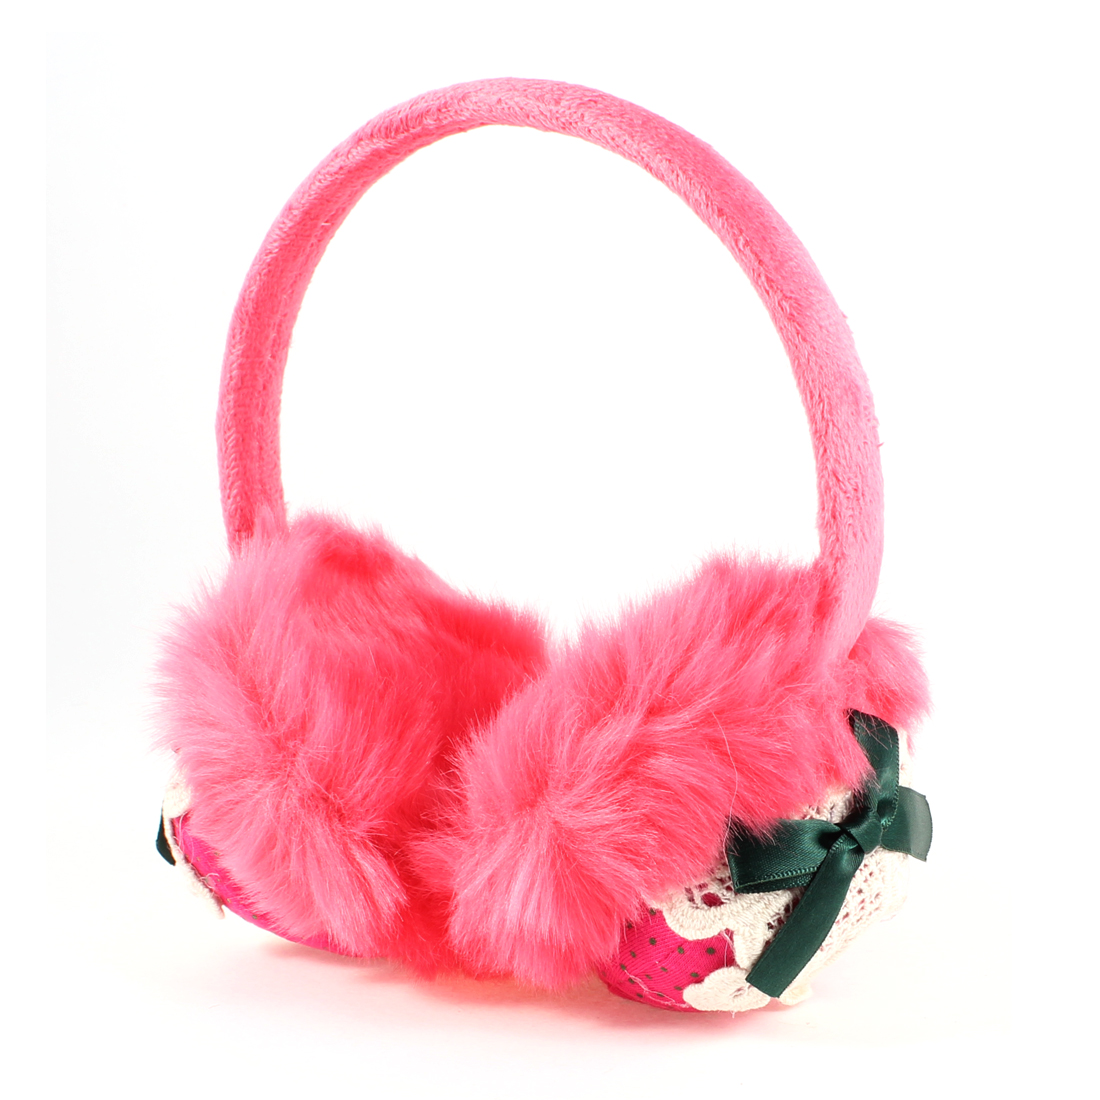 Hot Pink Plush Fuchsia Strawberry Print Teal Blue Bowtie Round Back Earmuff for Women